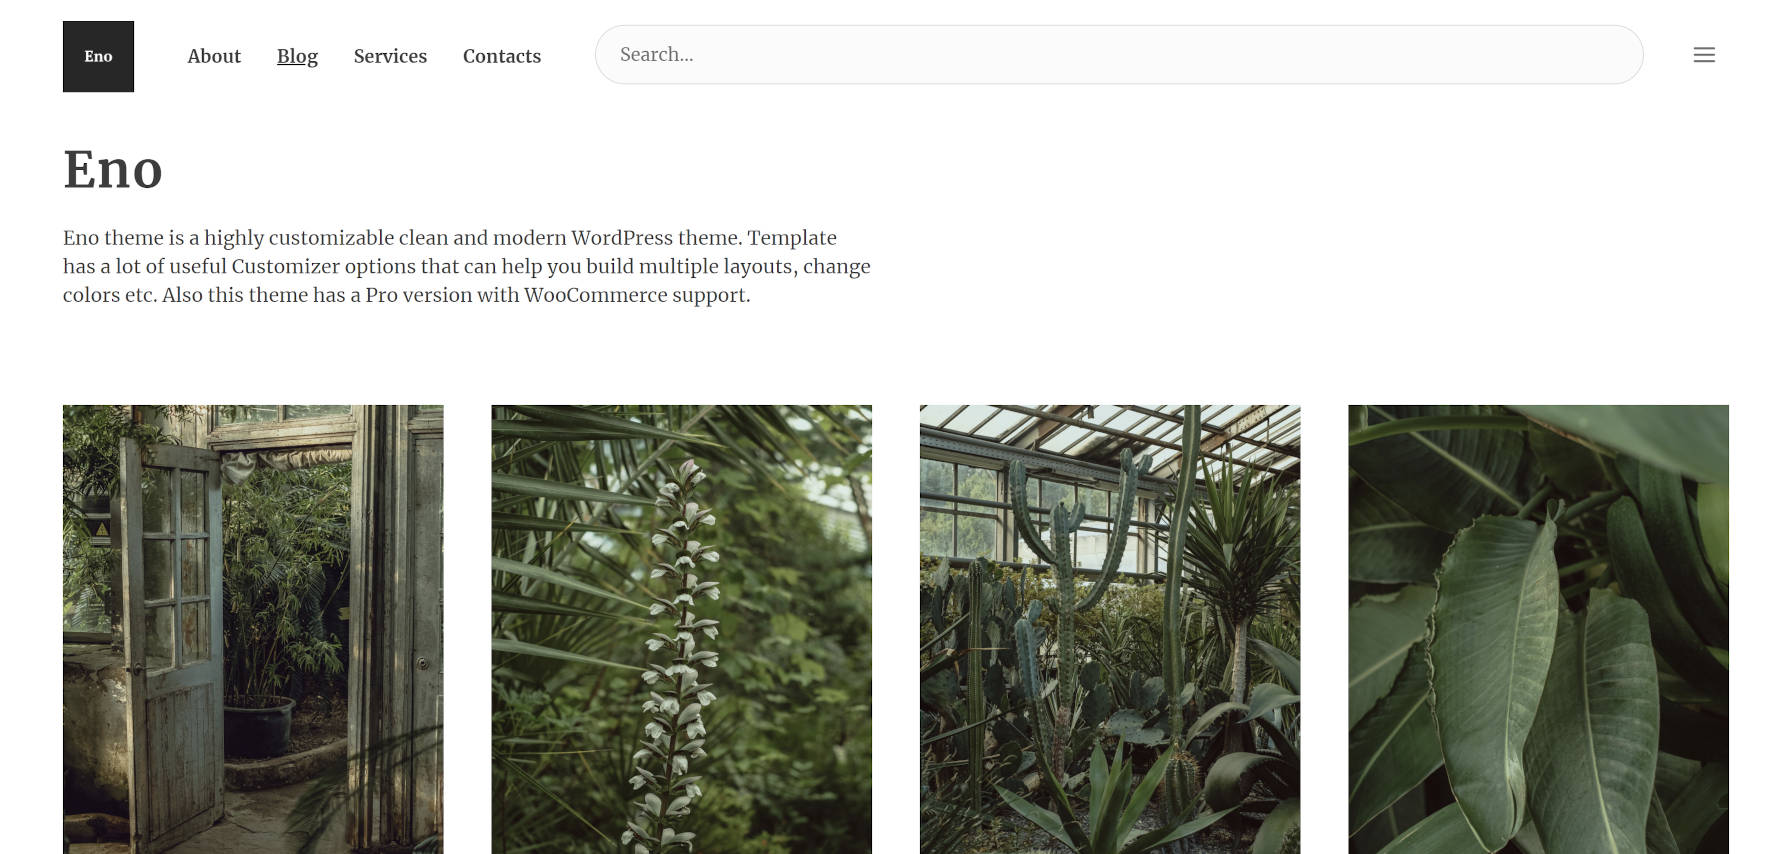 Grid-style WordPress theme blog posts page.